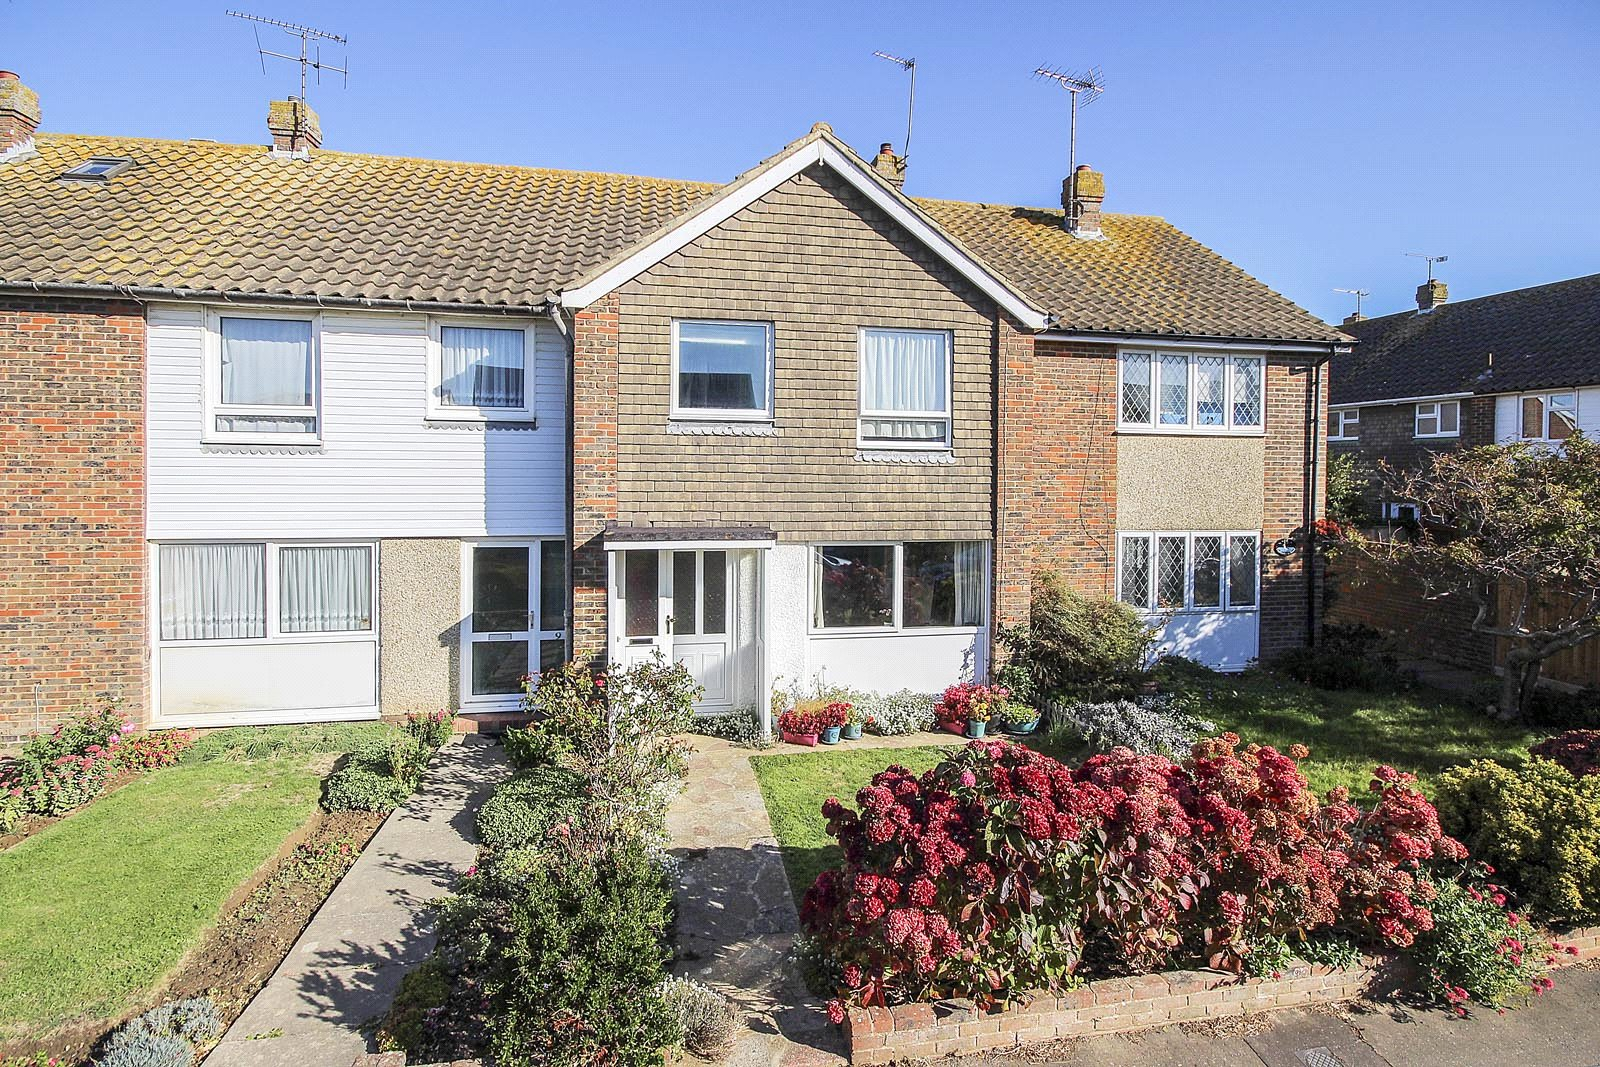 3 bed house for sale in Shaftesbury Road, Rustington, BN16